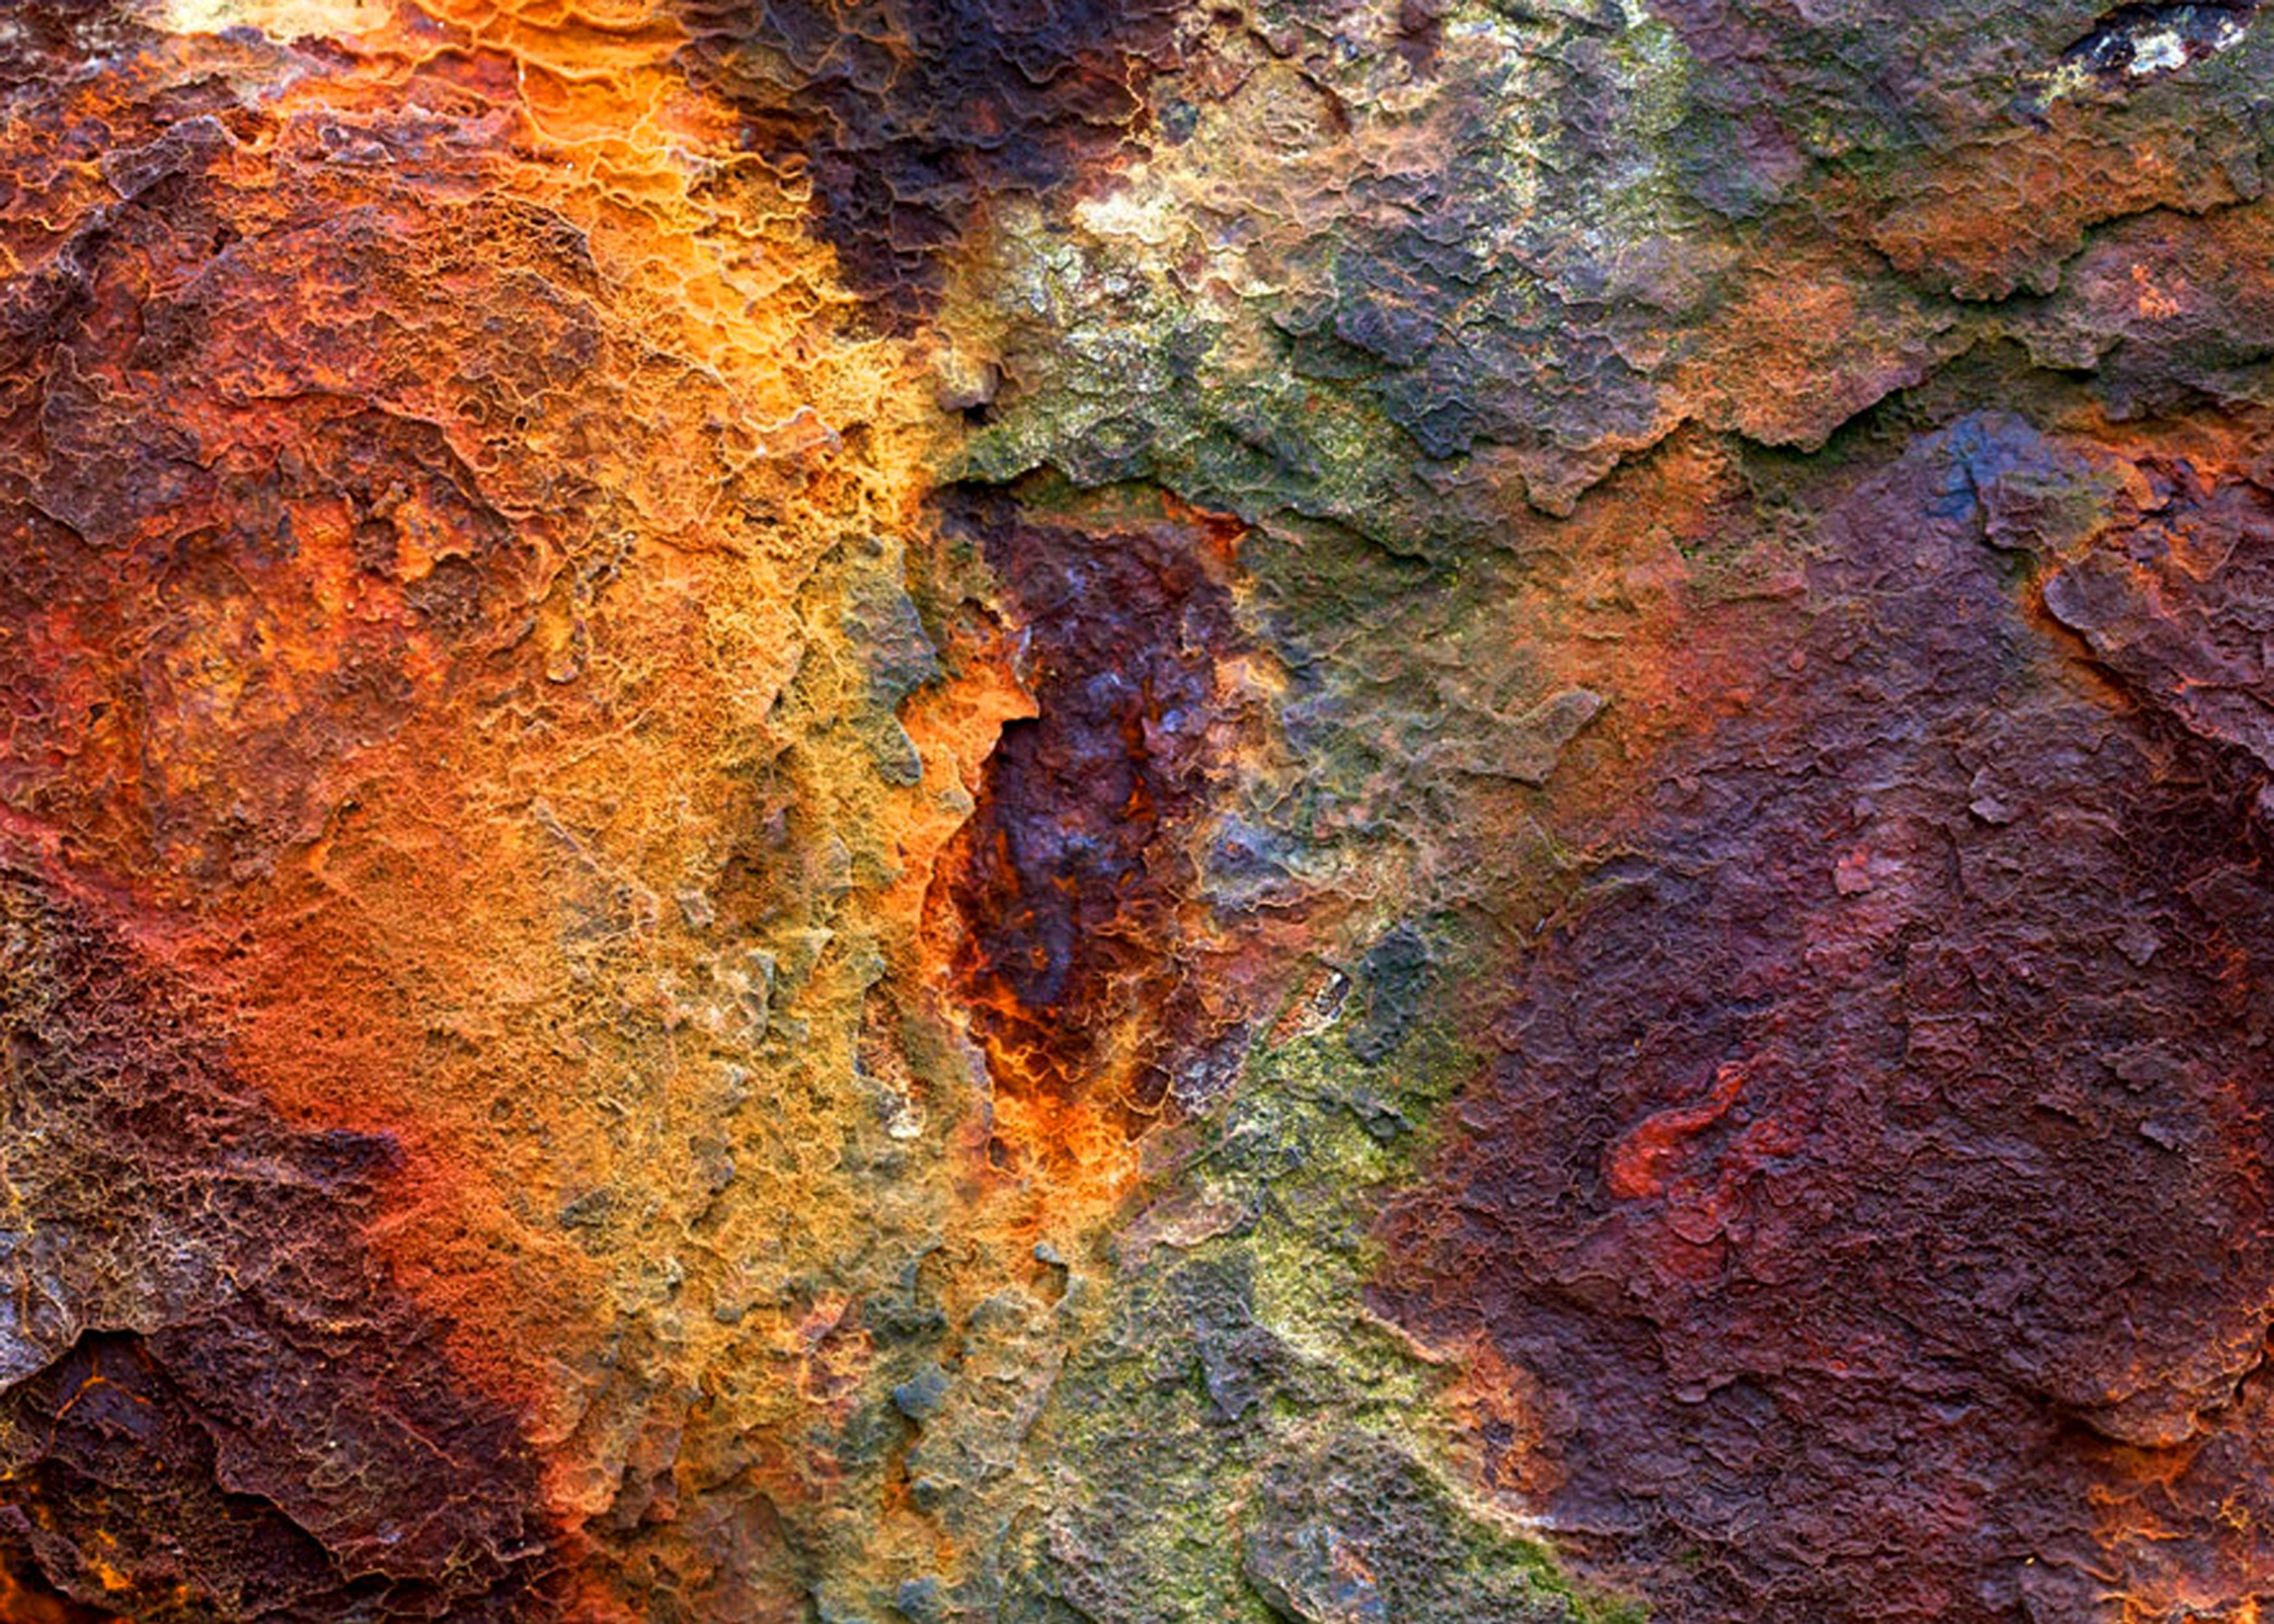 Metal Textures Archives - Page 4 of 4 - 14Textures |Rusty Tin